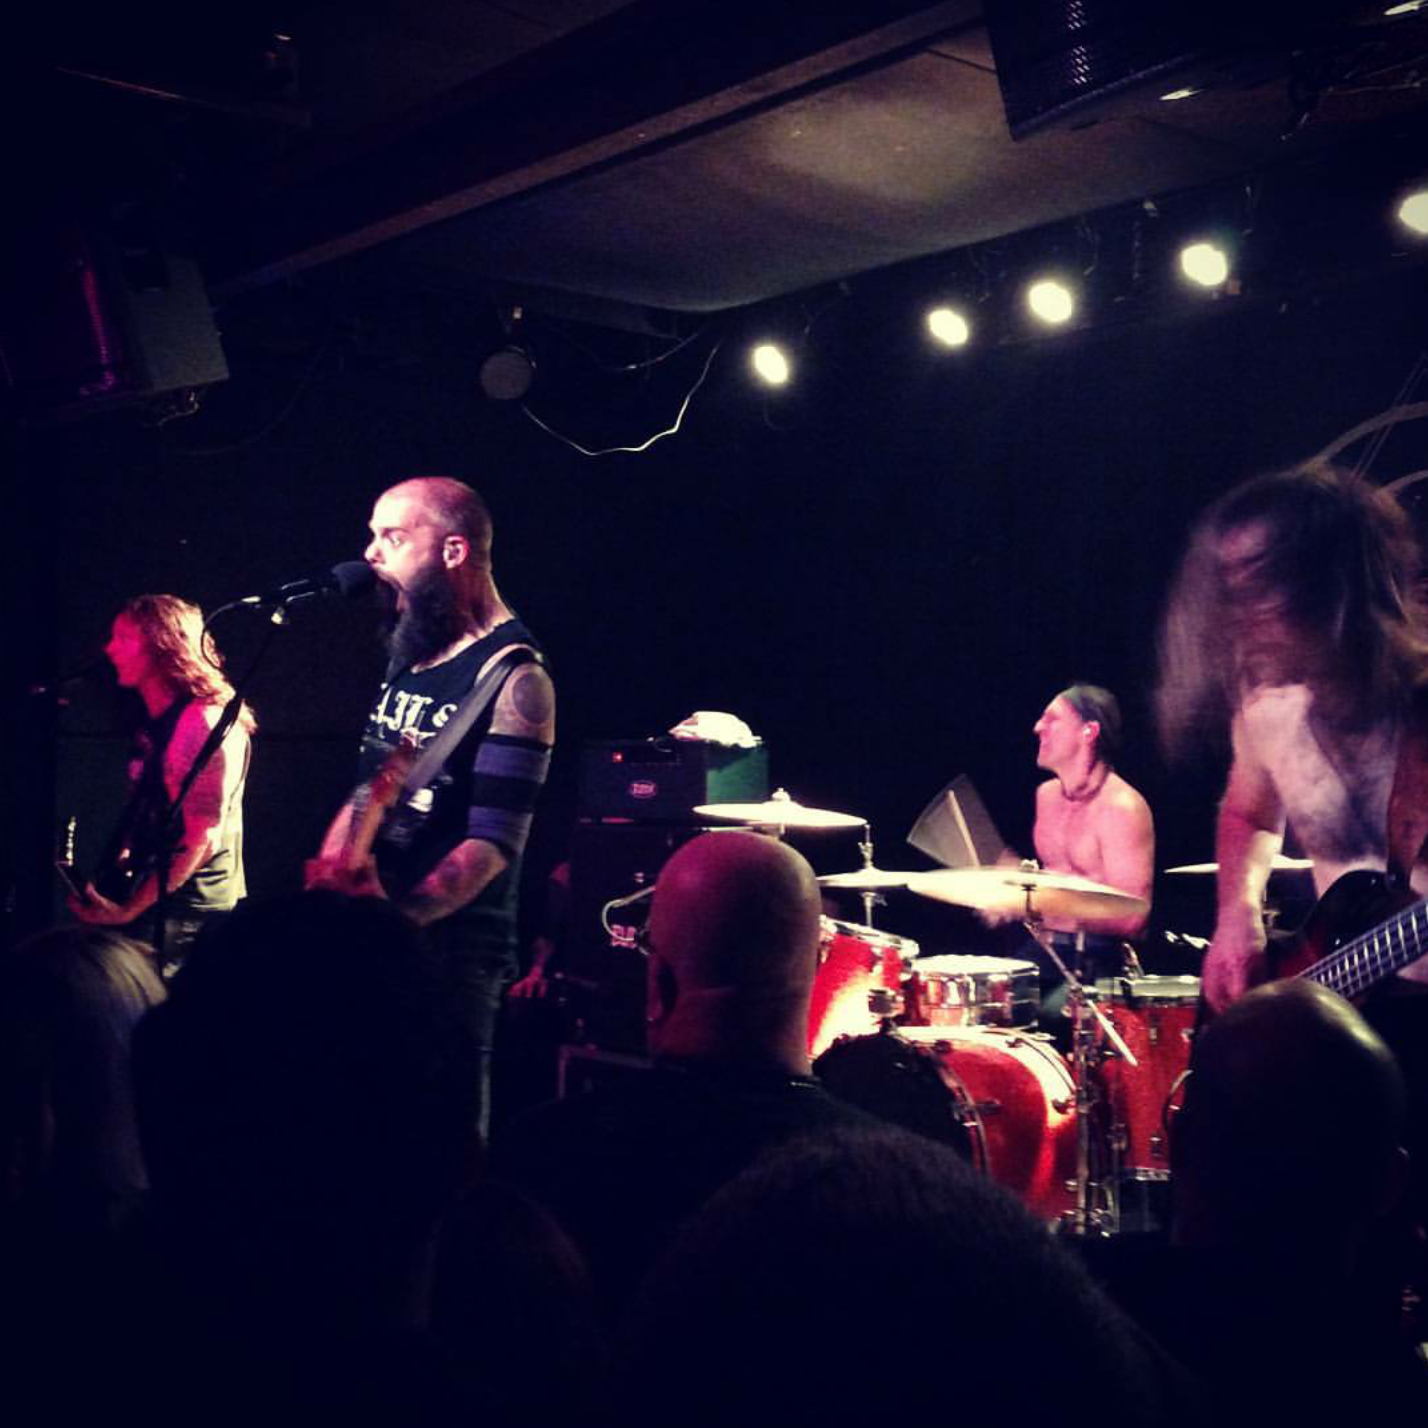 greg C (center) photographing Baroness at Saint Vitus Bar in Brooklyn, NY- December 21, 2015. Photo by Metal Mark.